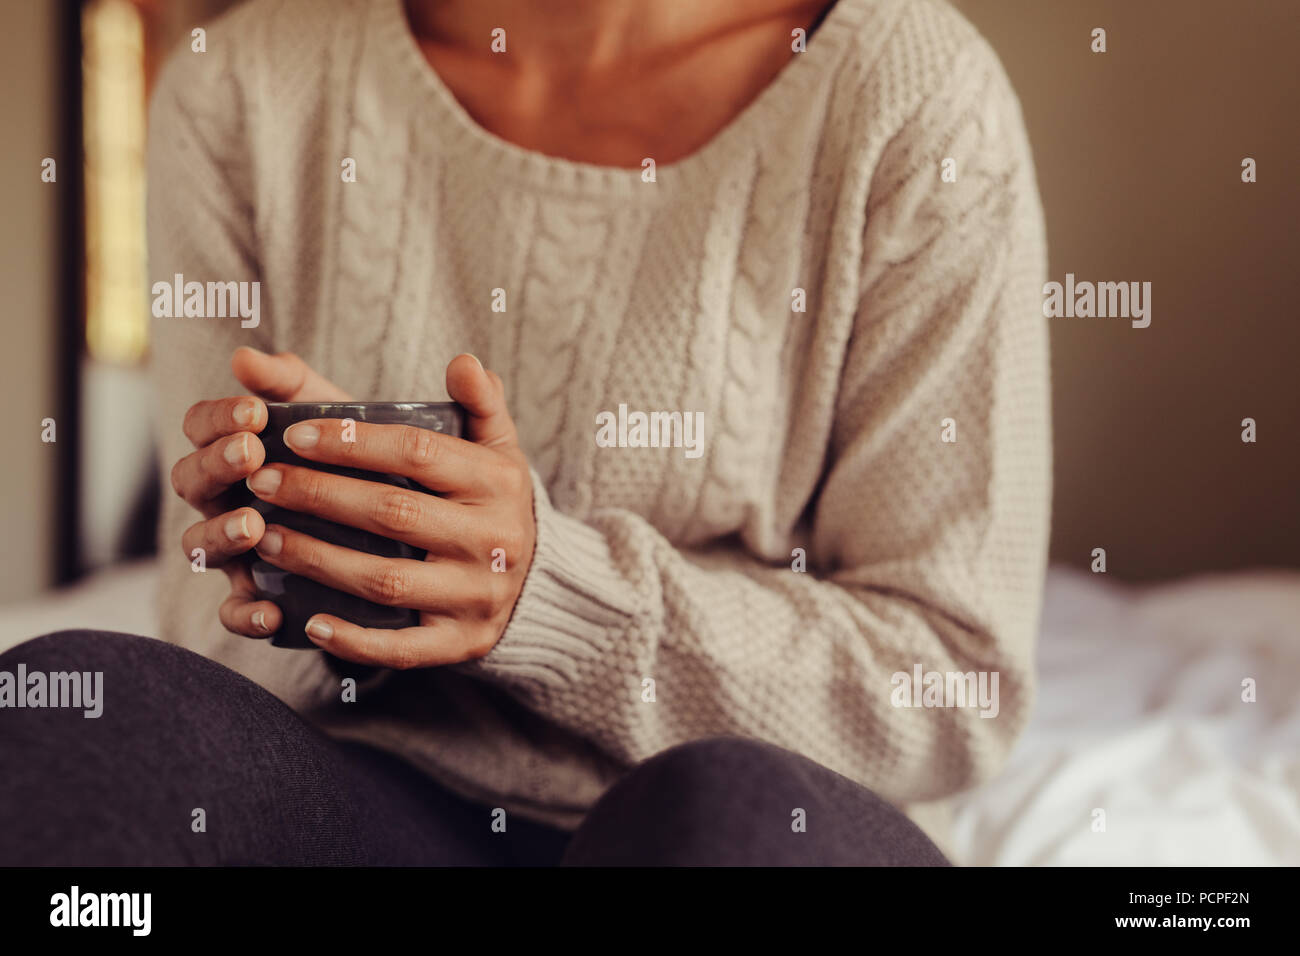 Close up of woman wearing sweater holding a cup of coffee while sitting on bed. Cropped shot of woman having morning coffee in bed. Focus on hands hol - Stock Image